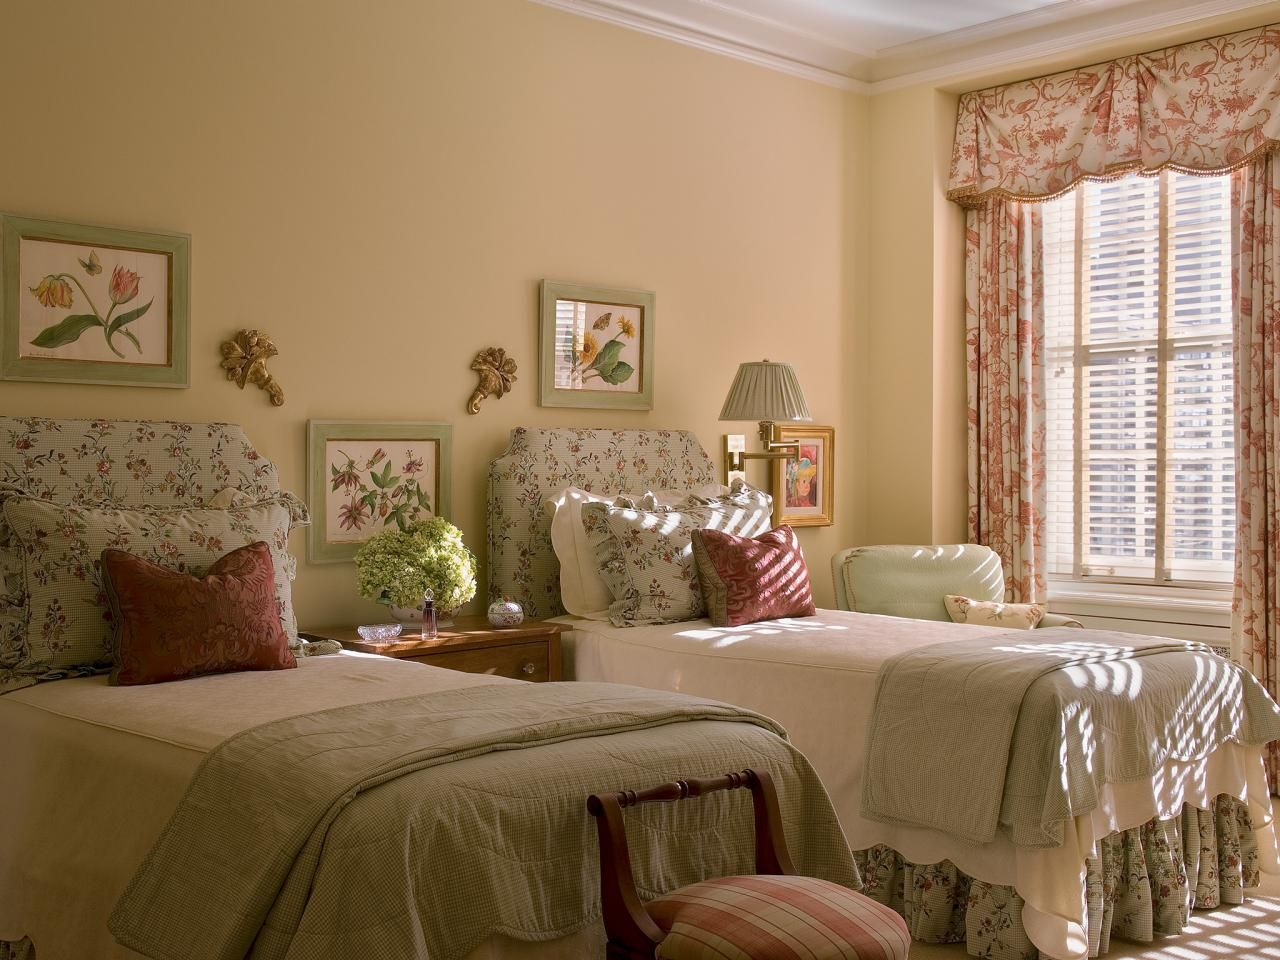 The sunny, countrystyle guest bedroom is painted with